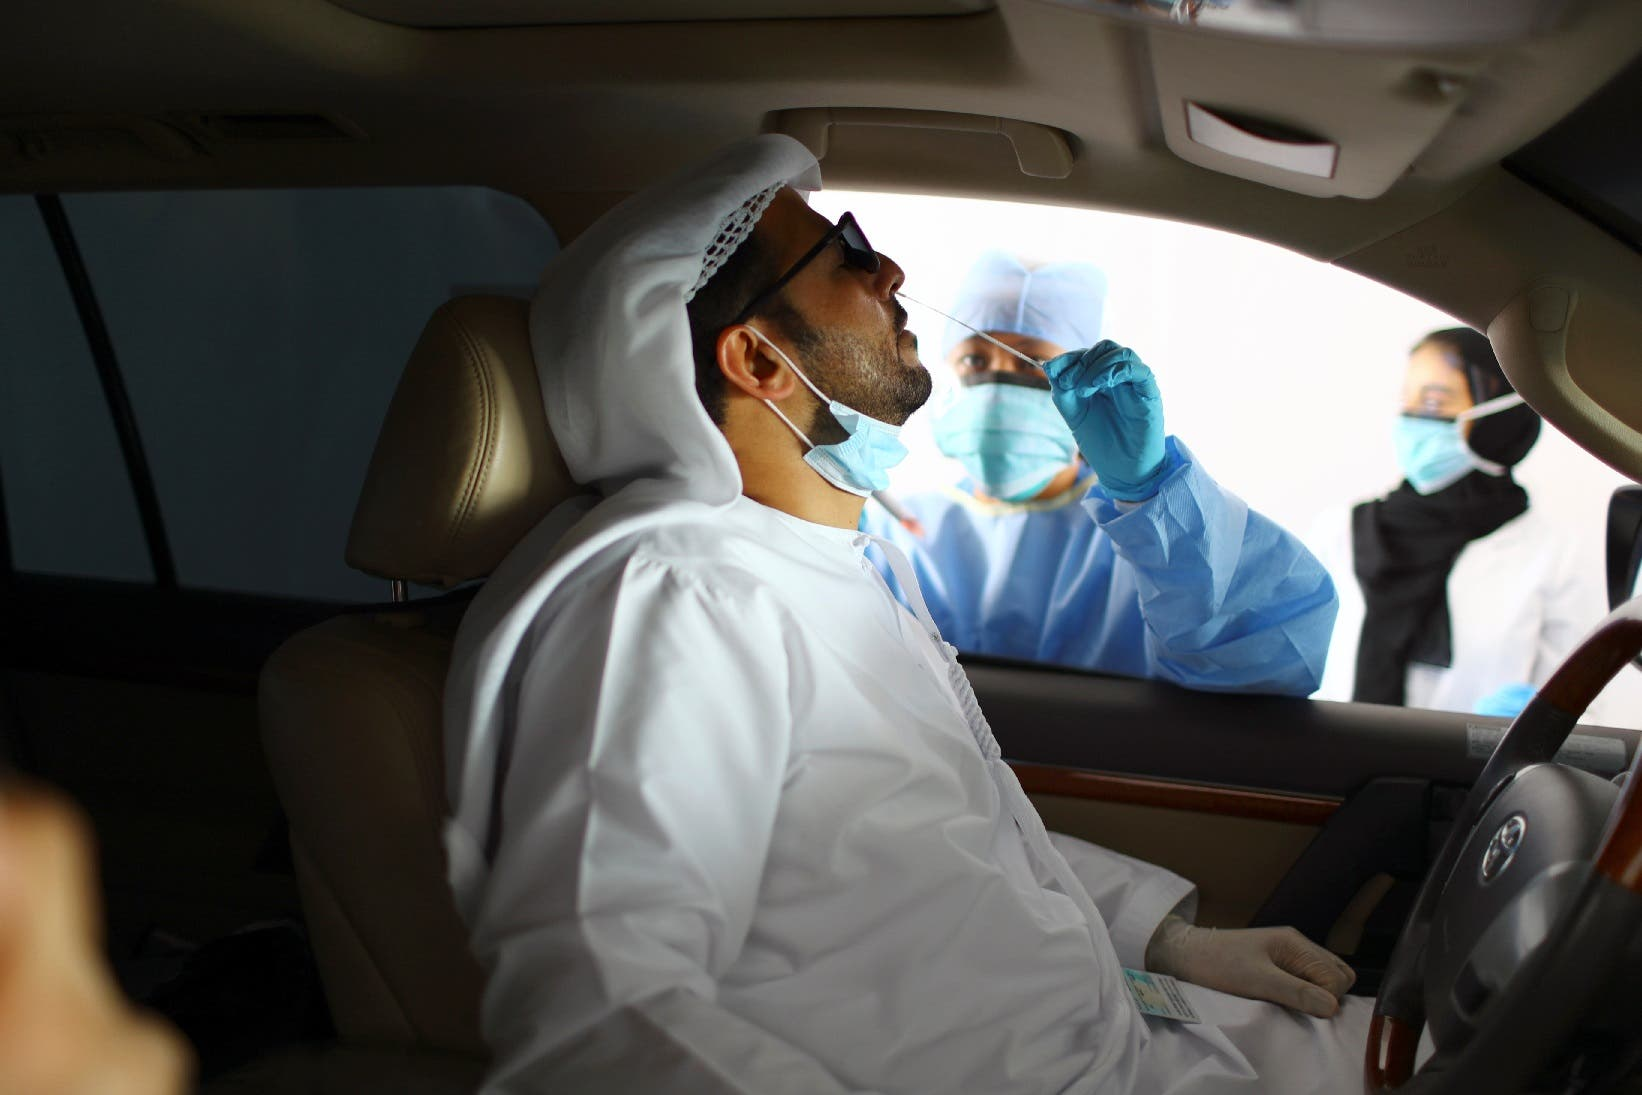 A member of medical staff wearing a protective face mask and gloves takes a swab from a man during drive-thru coronavirus testing at a screening center in Abu Dhabi, UAE. (File photo: Reuters)